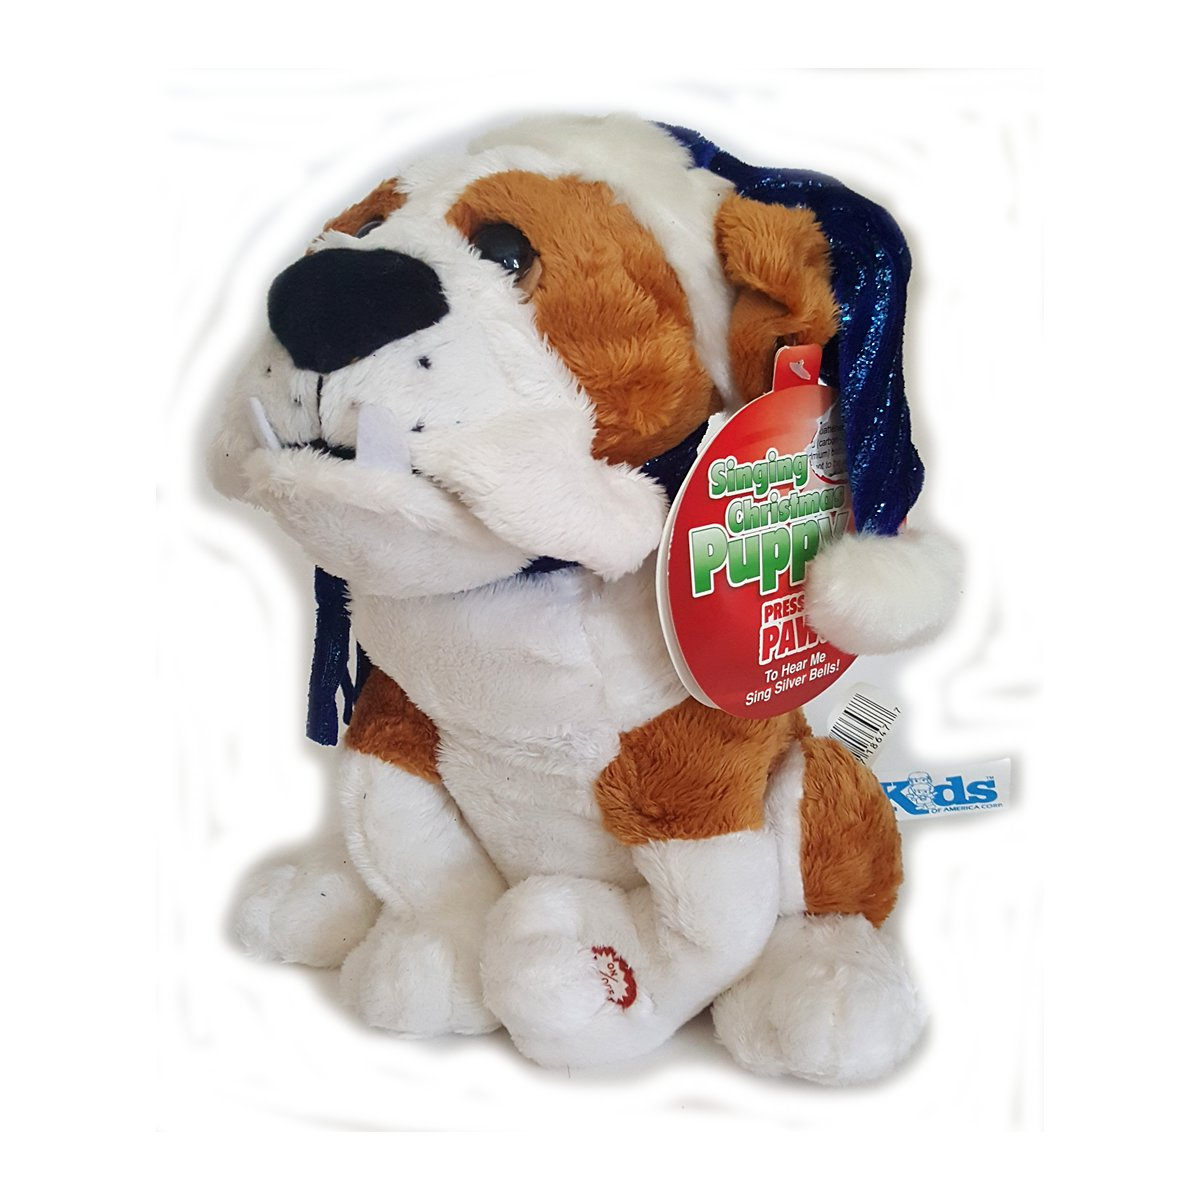 Kids of America Singing Christmas Puppy Bulldog Sings Silver Bells